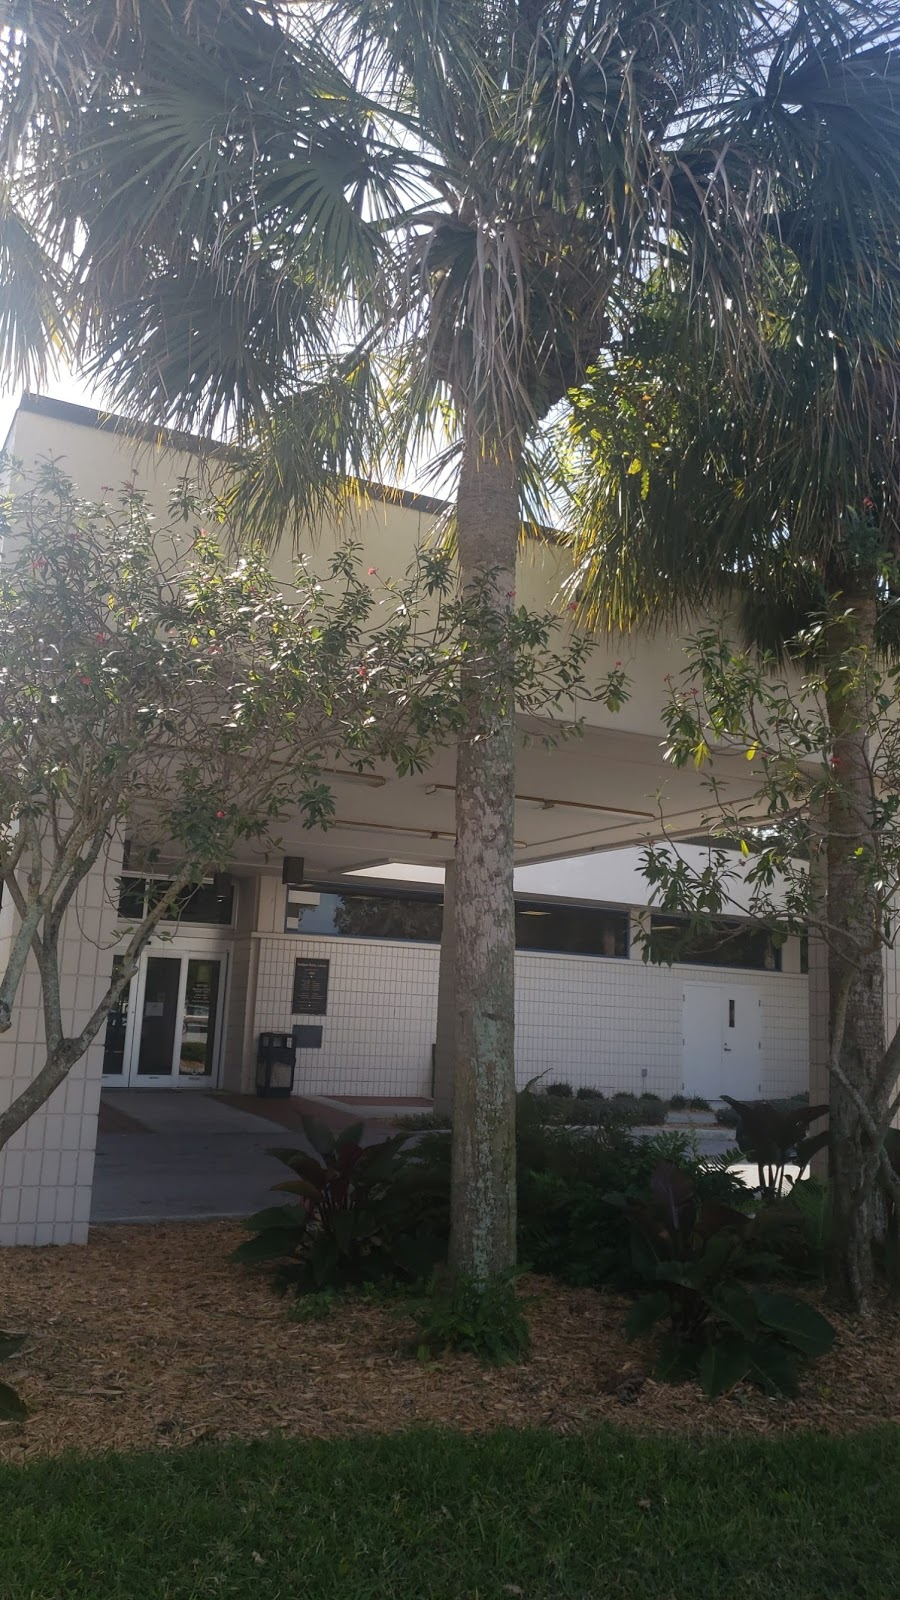 Gulfport Public Library - library    Photo 7 of 10   Address: 5501 28th Ave S, Gulfport, FL 33707, USA   Phone: (727) 893-1074